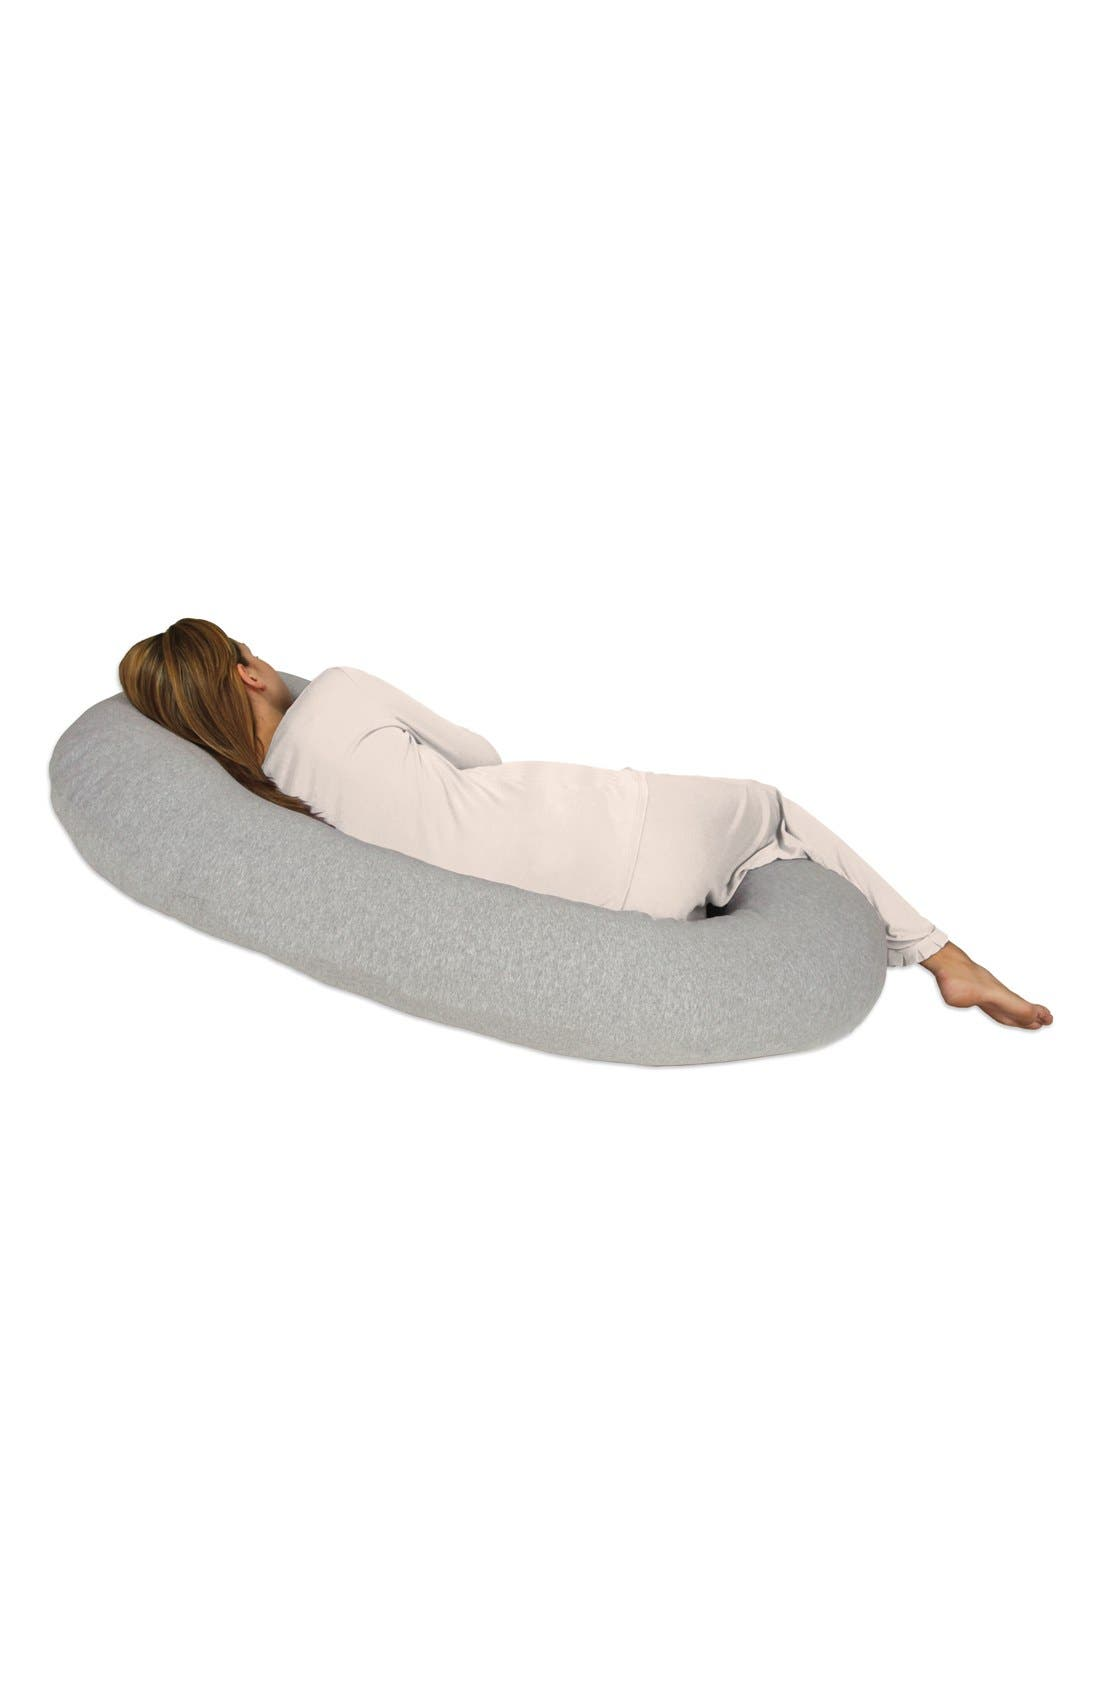 Alternate Image 4  - Leachco Snoogle Chic Full Body Pregnancy Support Pillow with Jersey Cover